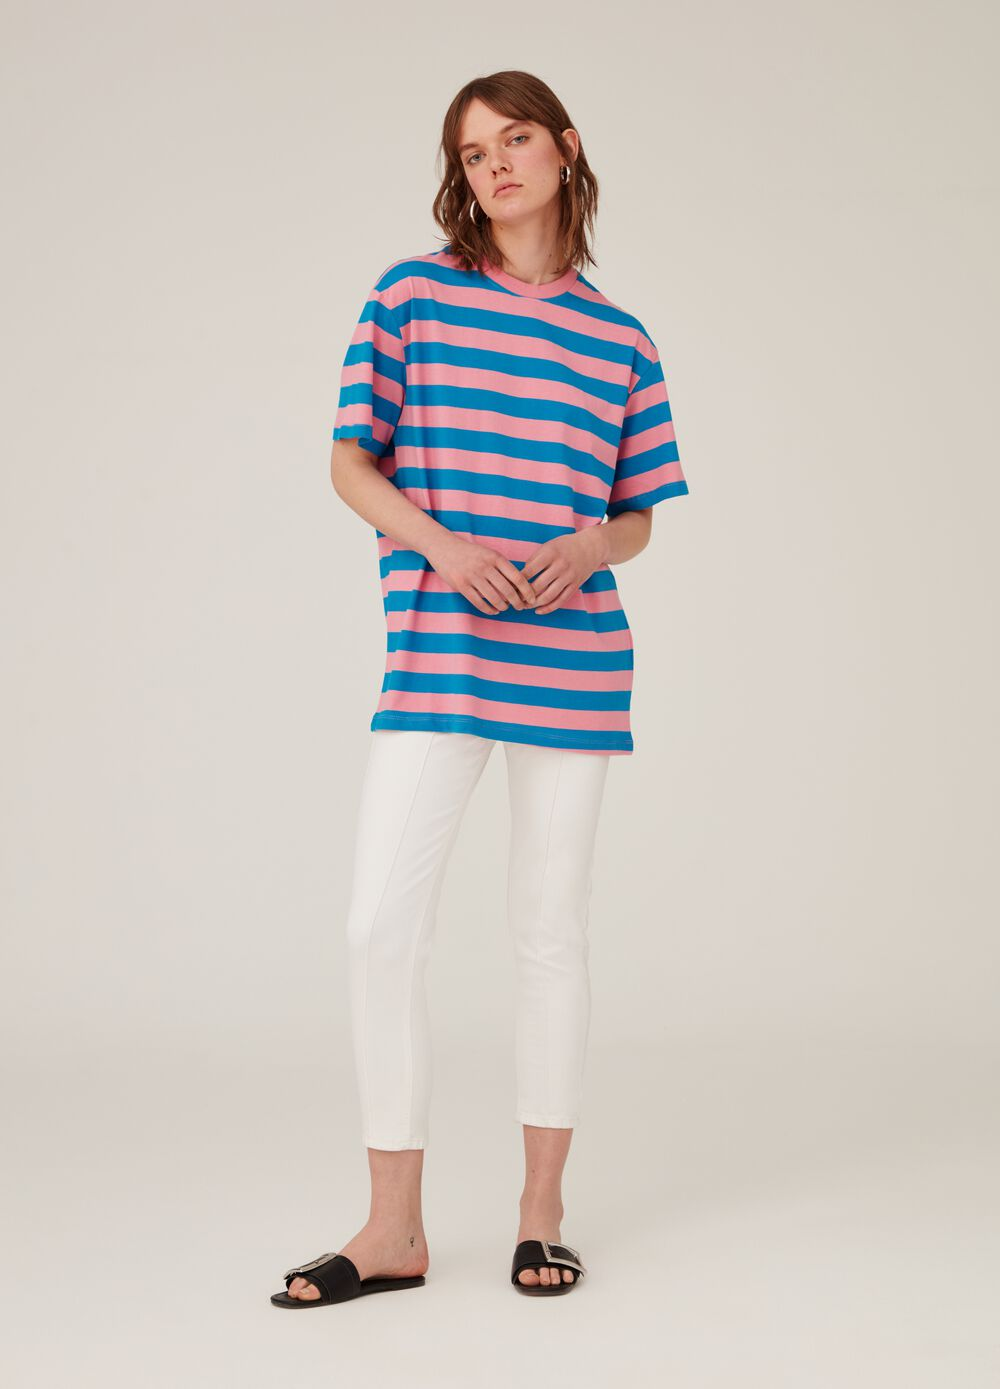 Oversized T-shirt in 100% cotton